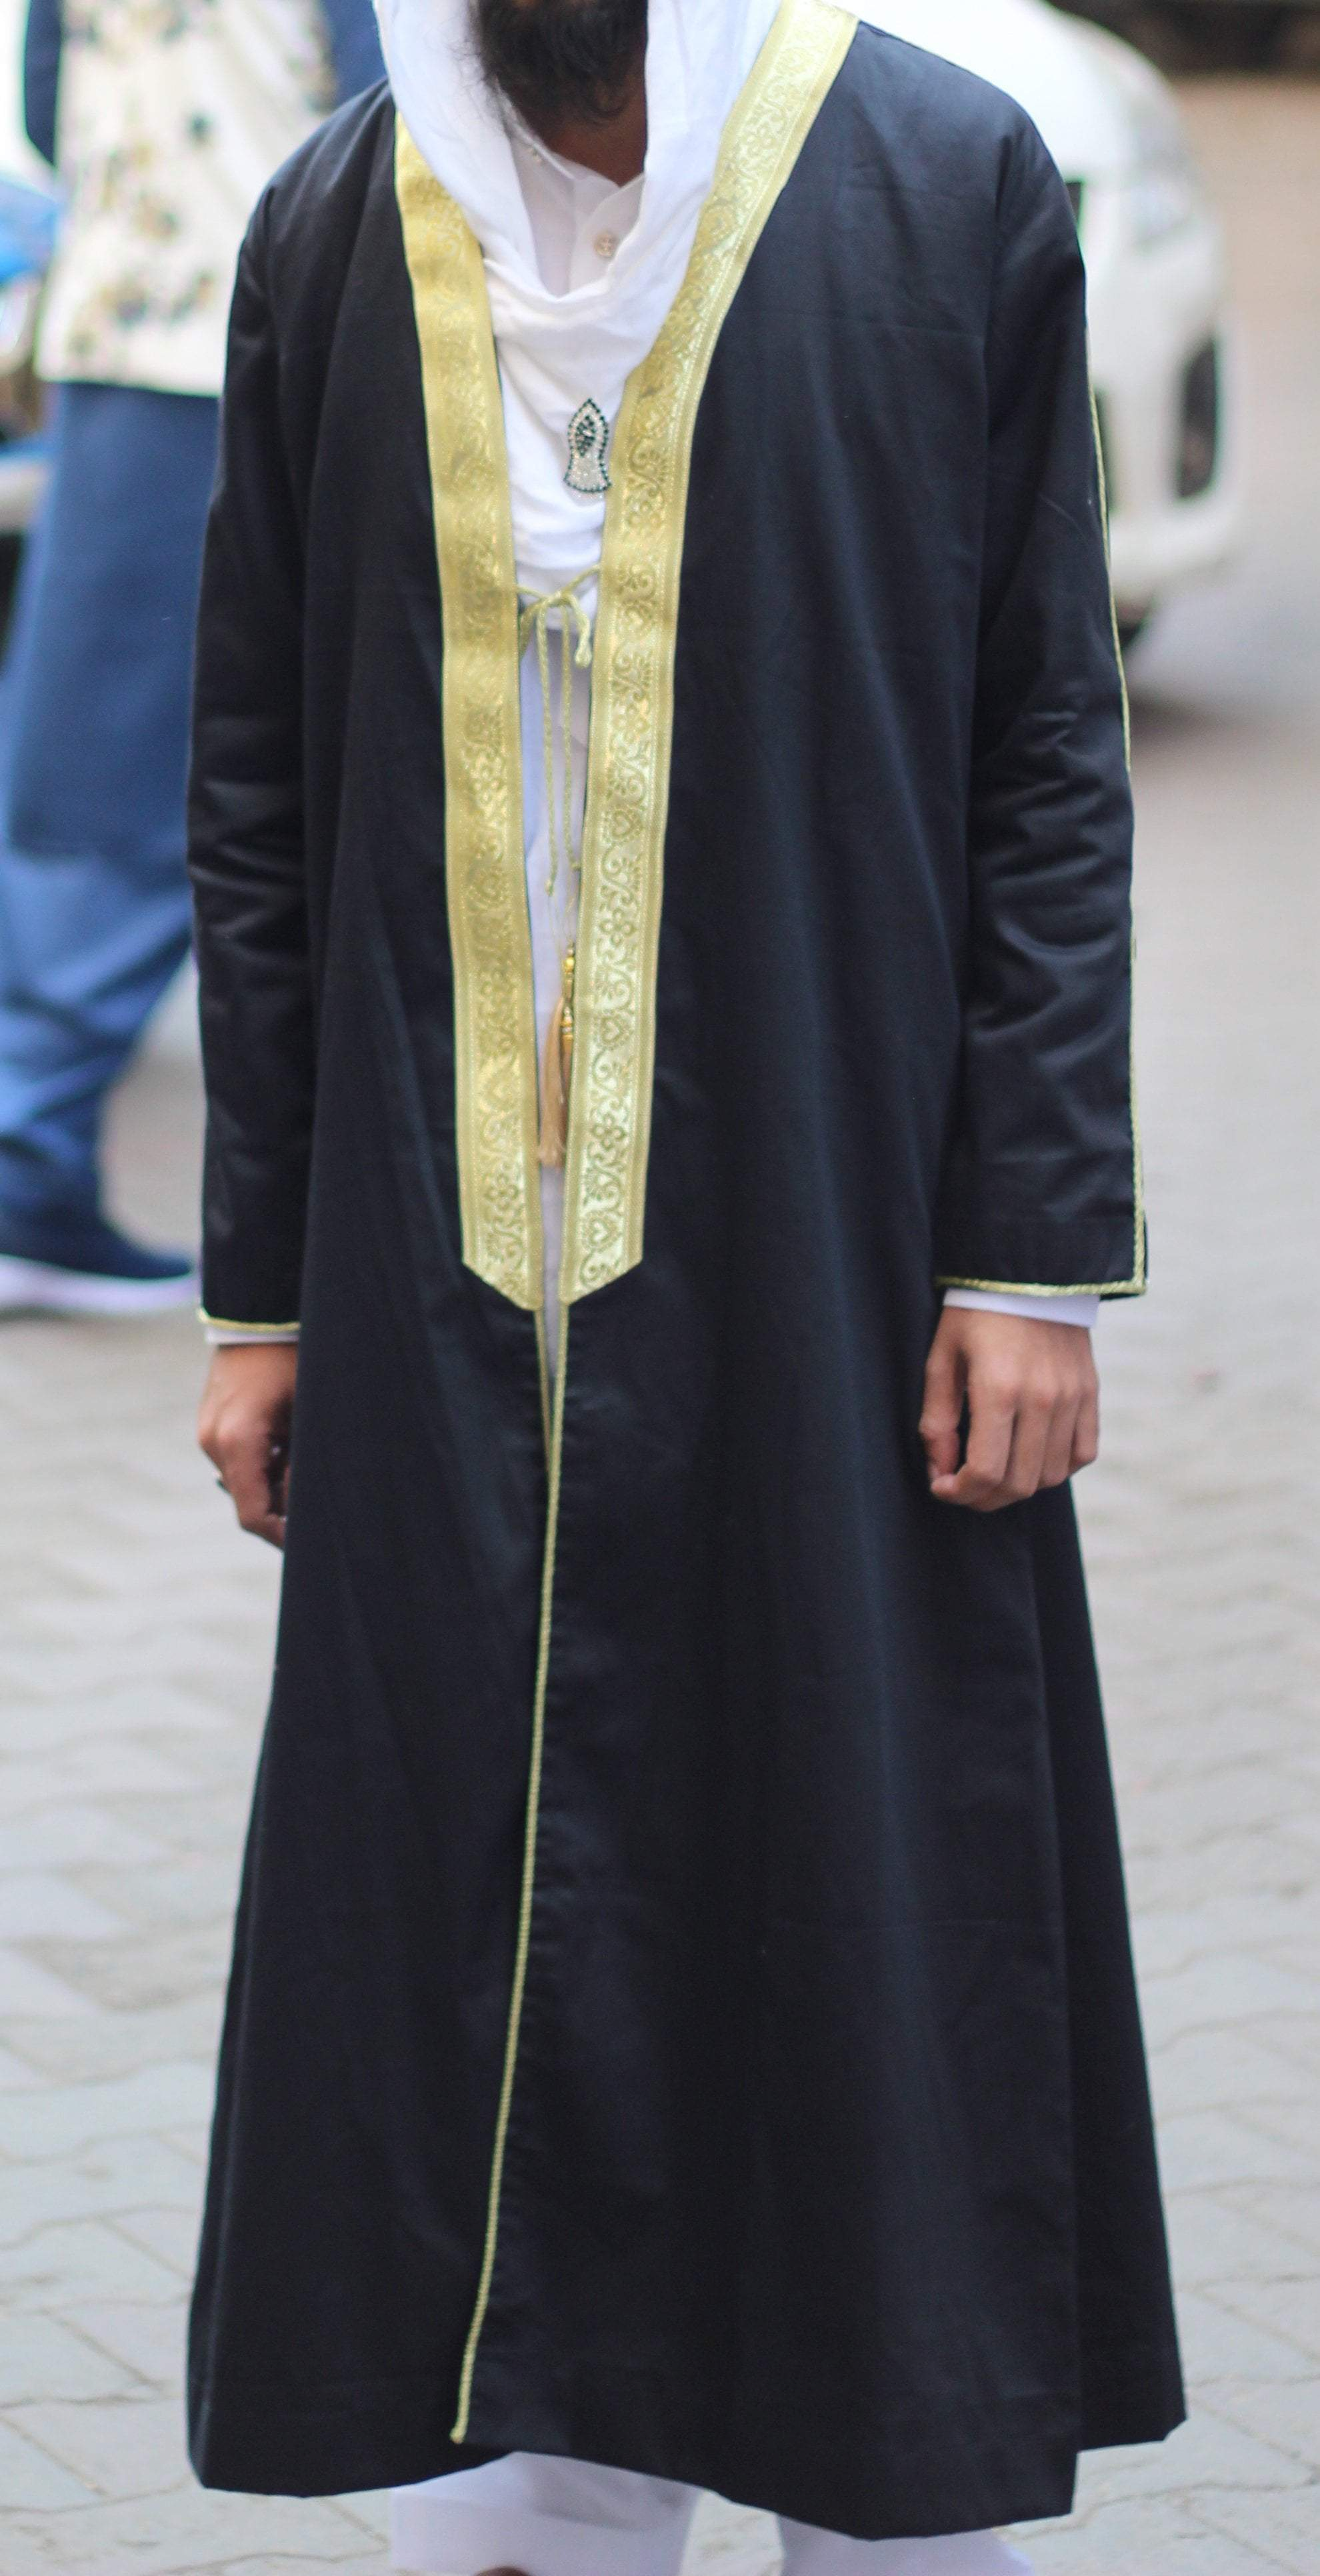 Buy Arabic Bisht Thobe Black Colour With Sleeves Online in india | Adilqadri.com